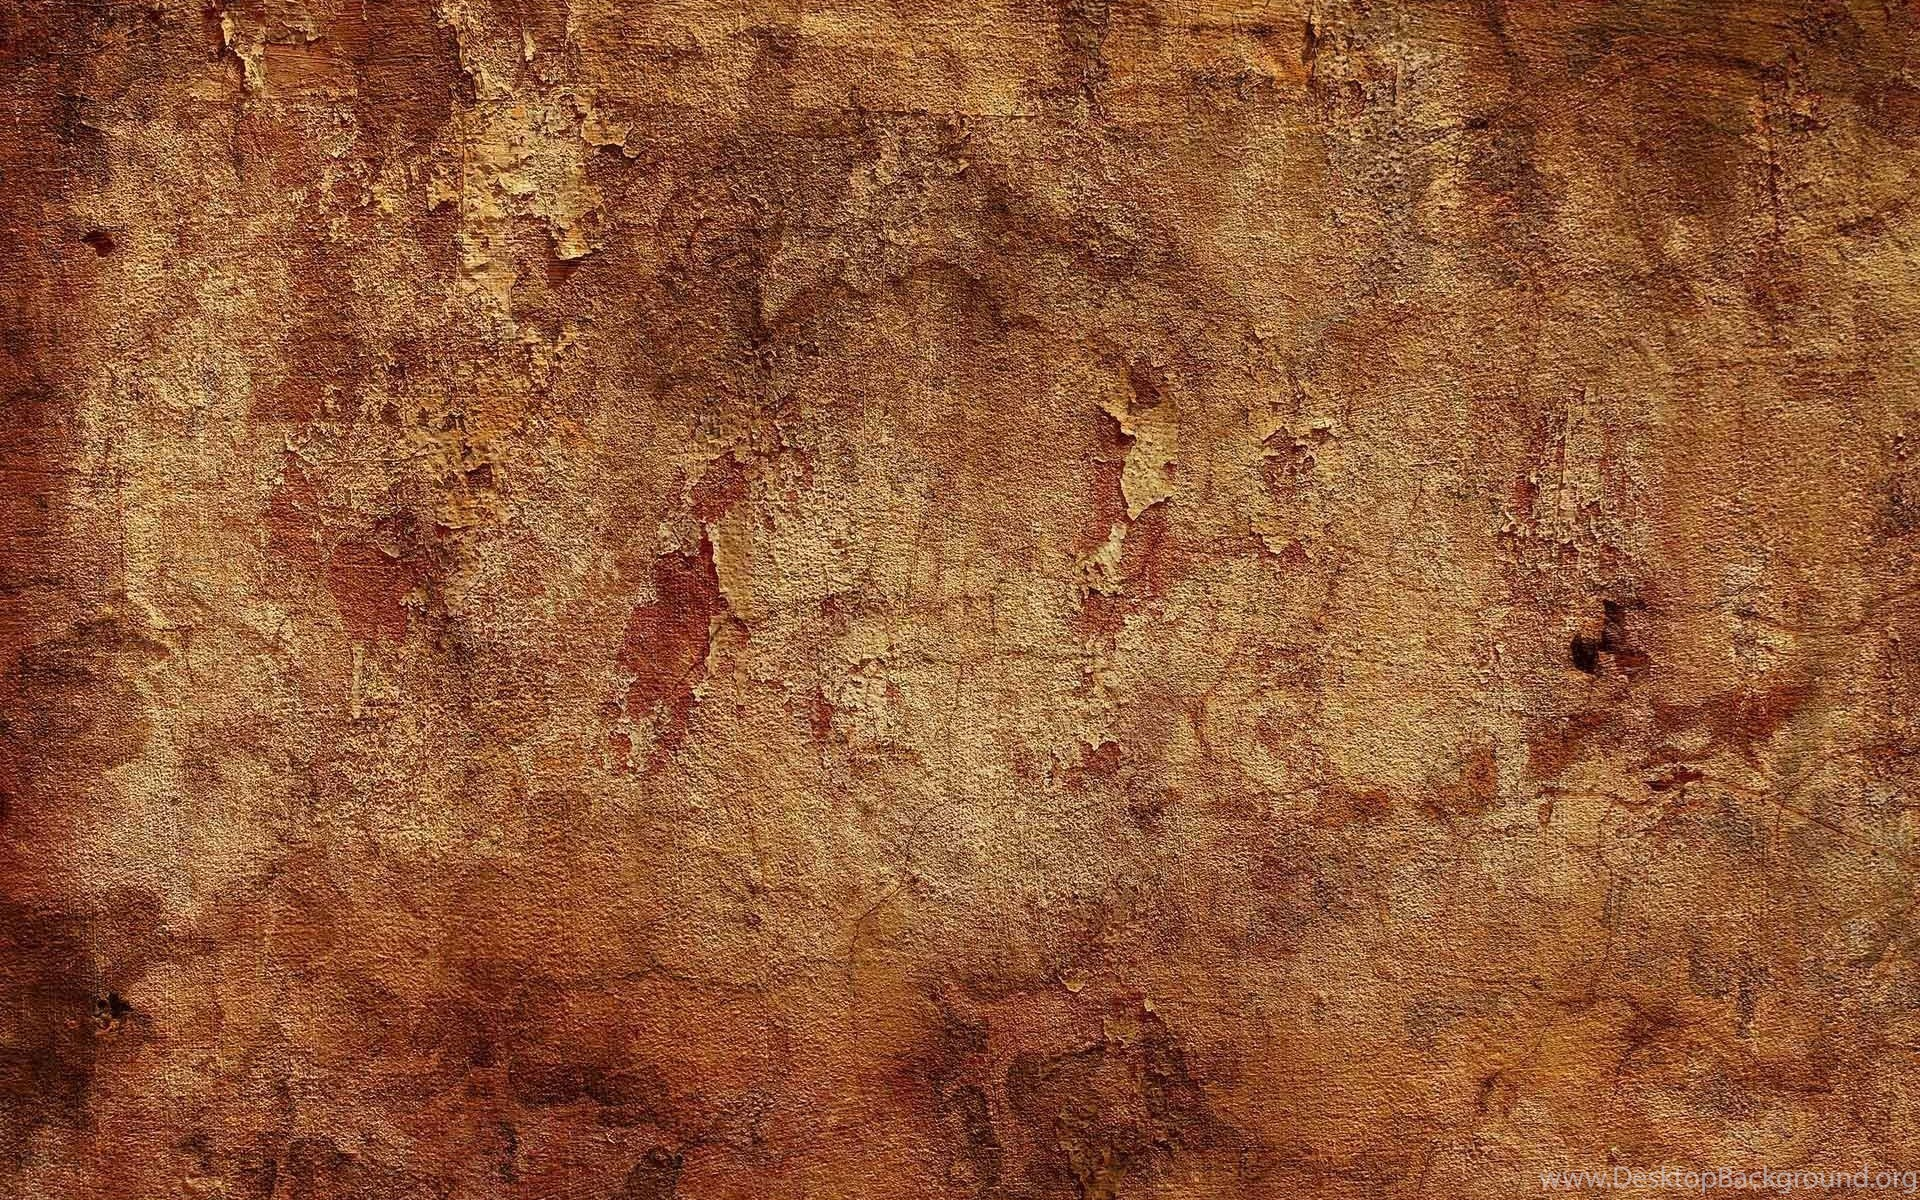 Wallpapers Surface, Cloth, Old, Paint, Dark, Seamless, Texture HD ...  Desktop Background